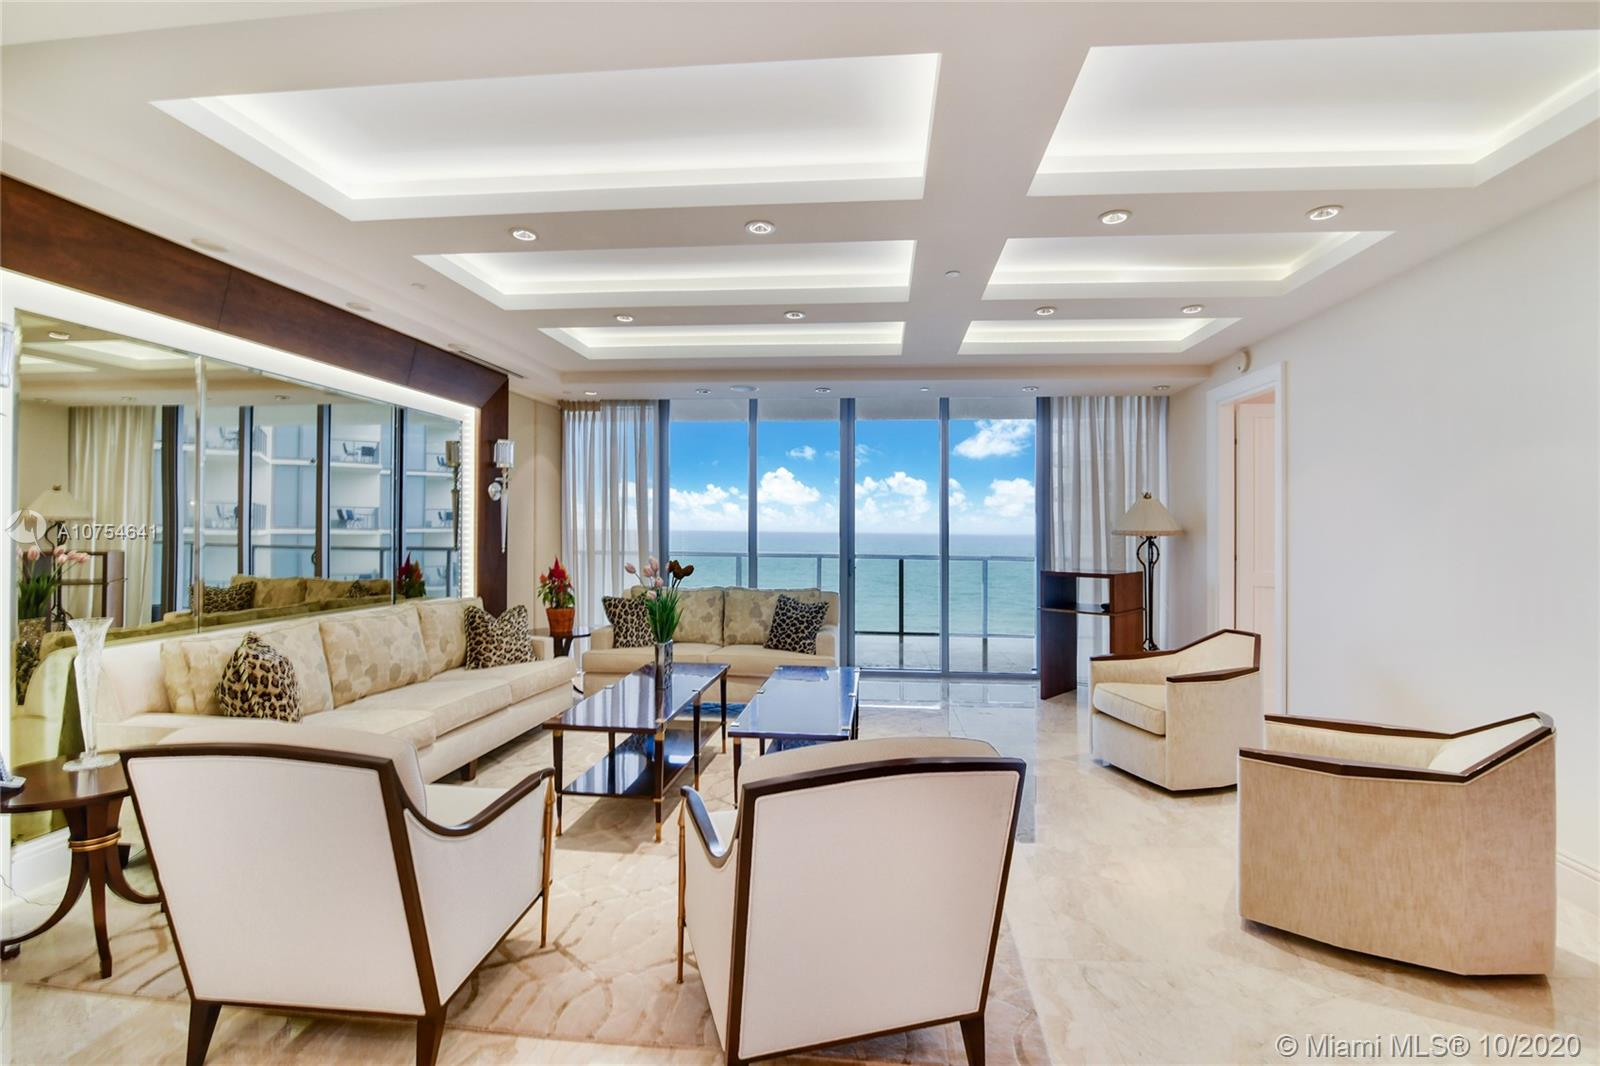 St Regis Bal Harbour North Tower #1103N - 9705 COLLINS AV #1103N, Bal Harbour, FL 33154